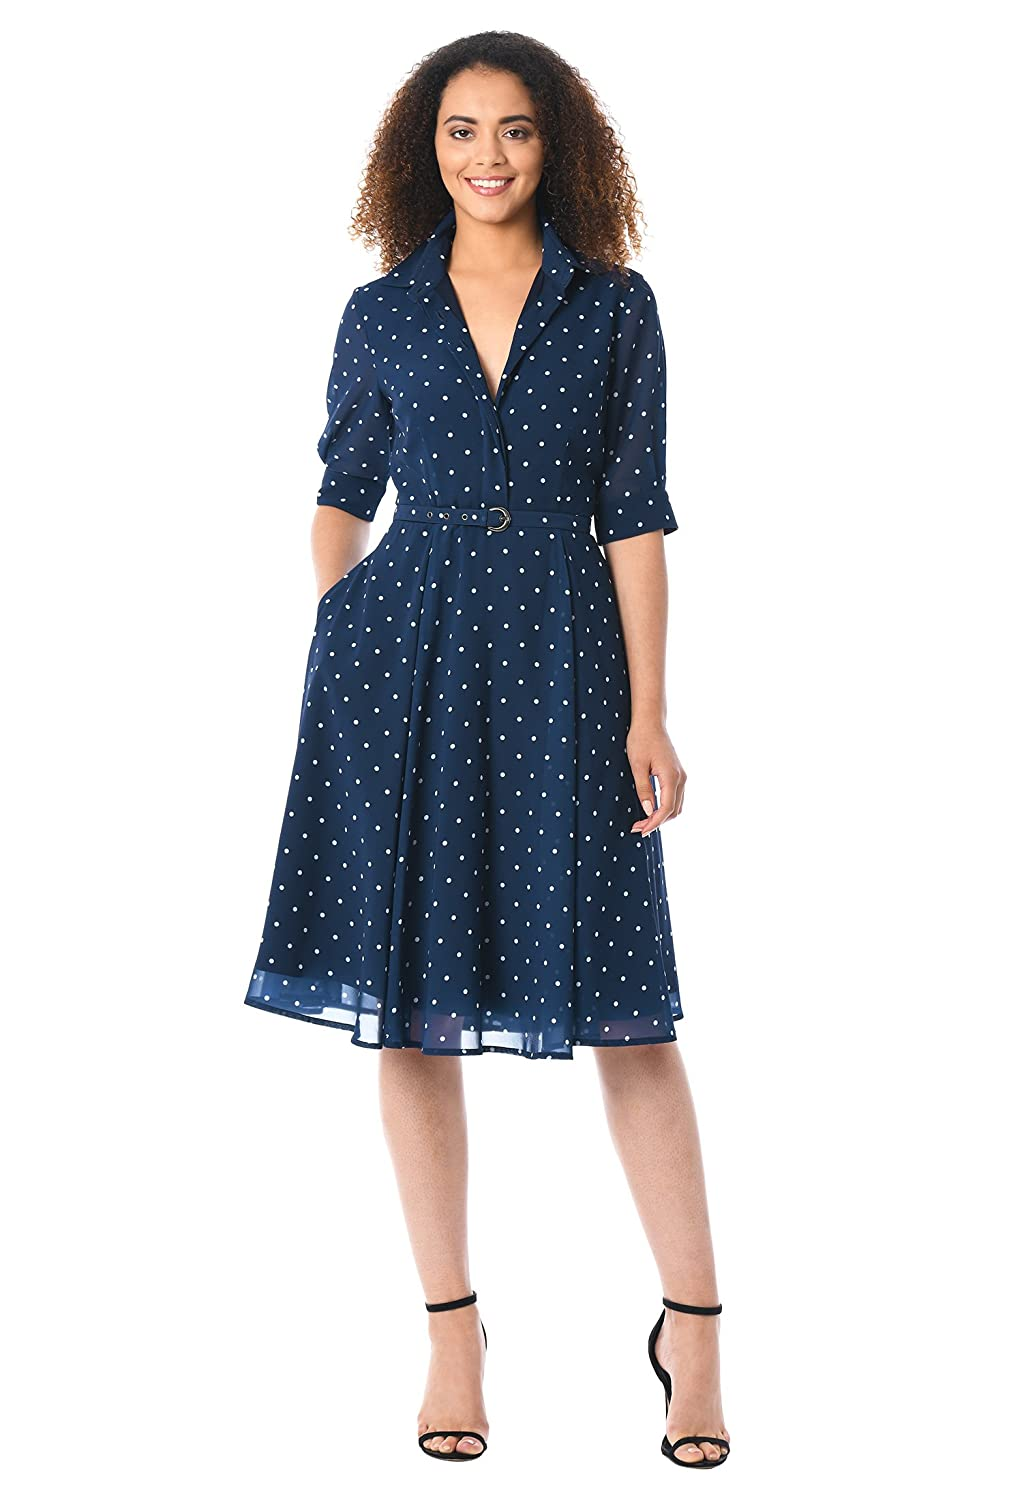 1940s Dresses | 40s Dress, Swing Dress Polka dot Print Georgette eShakti Womens Belted Shirtdress $69.95 AT vintagedancer.com